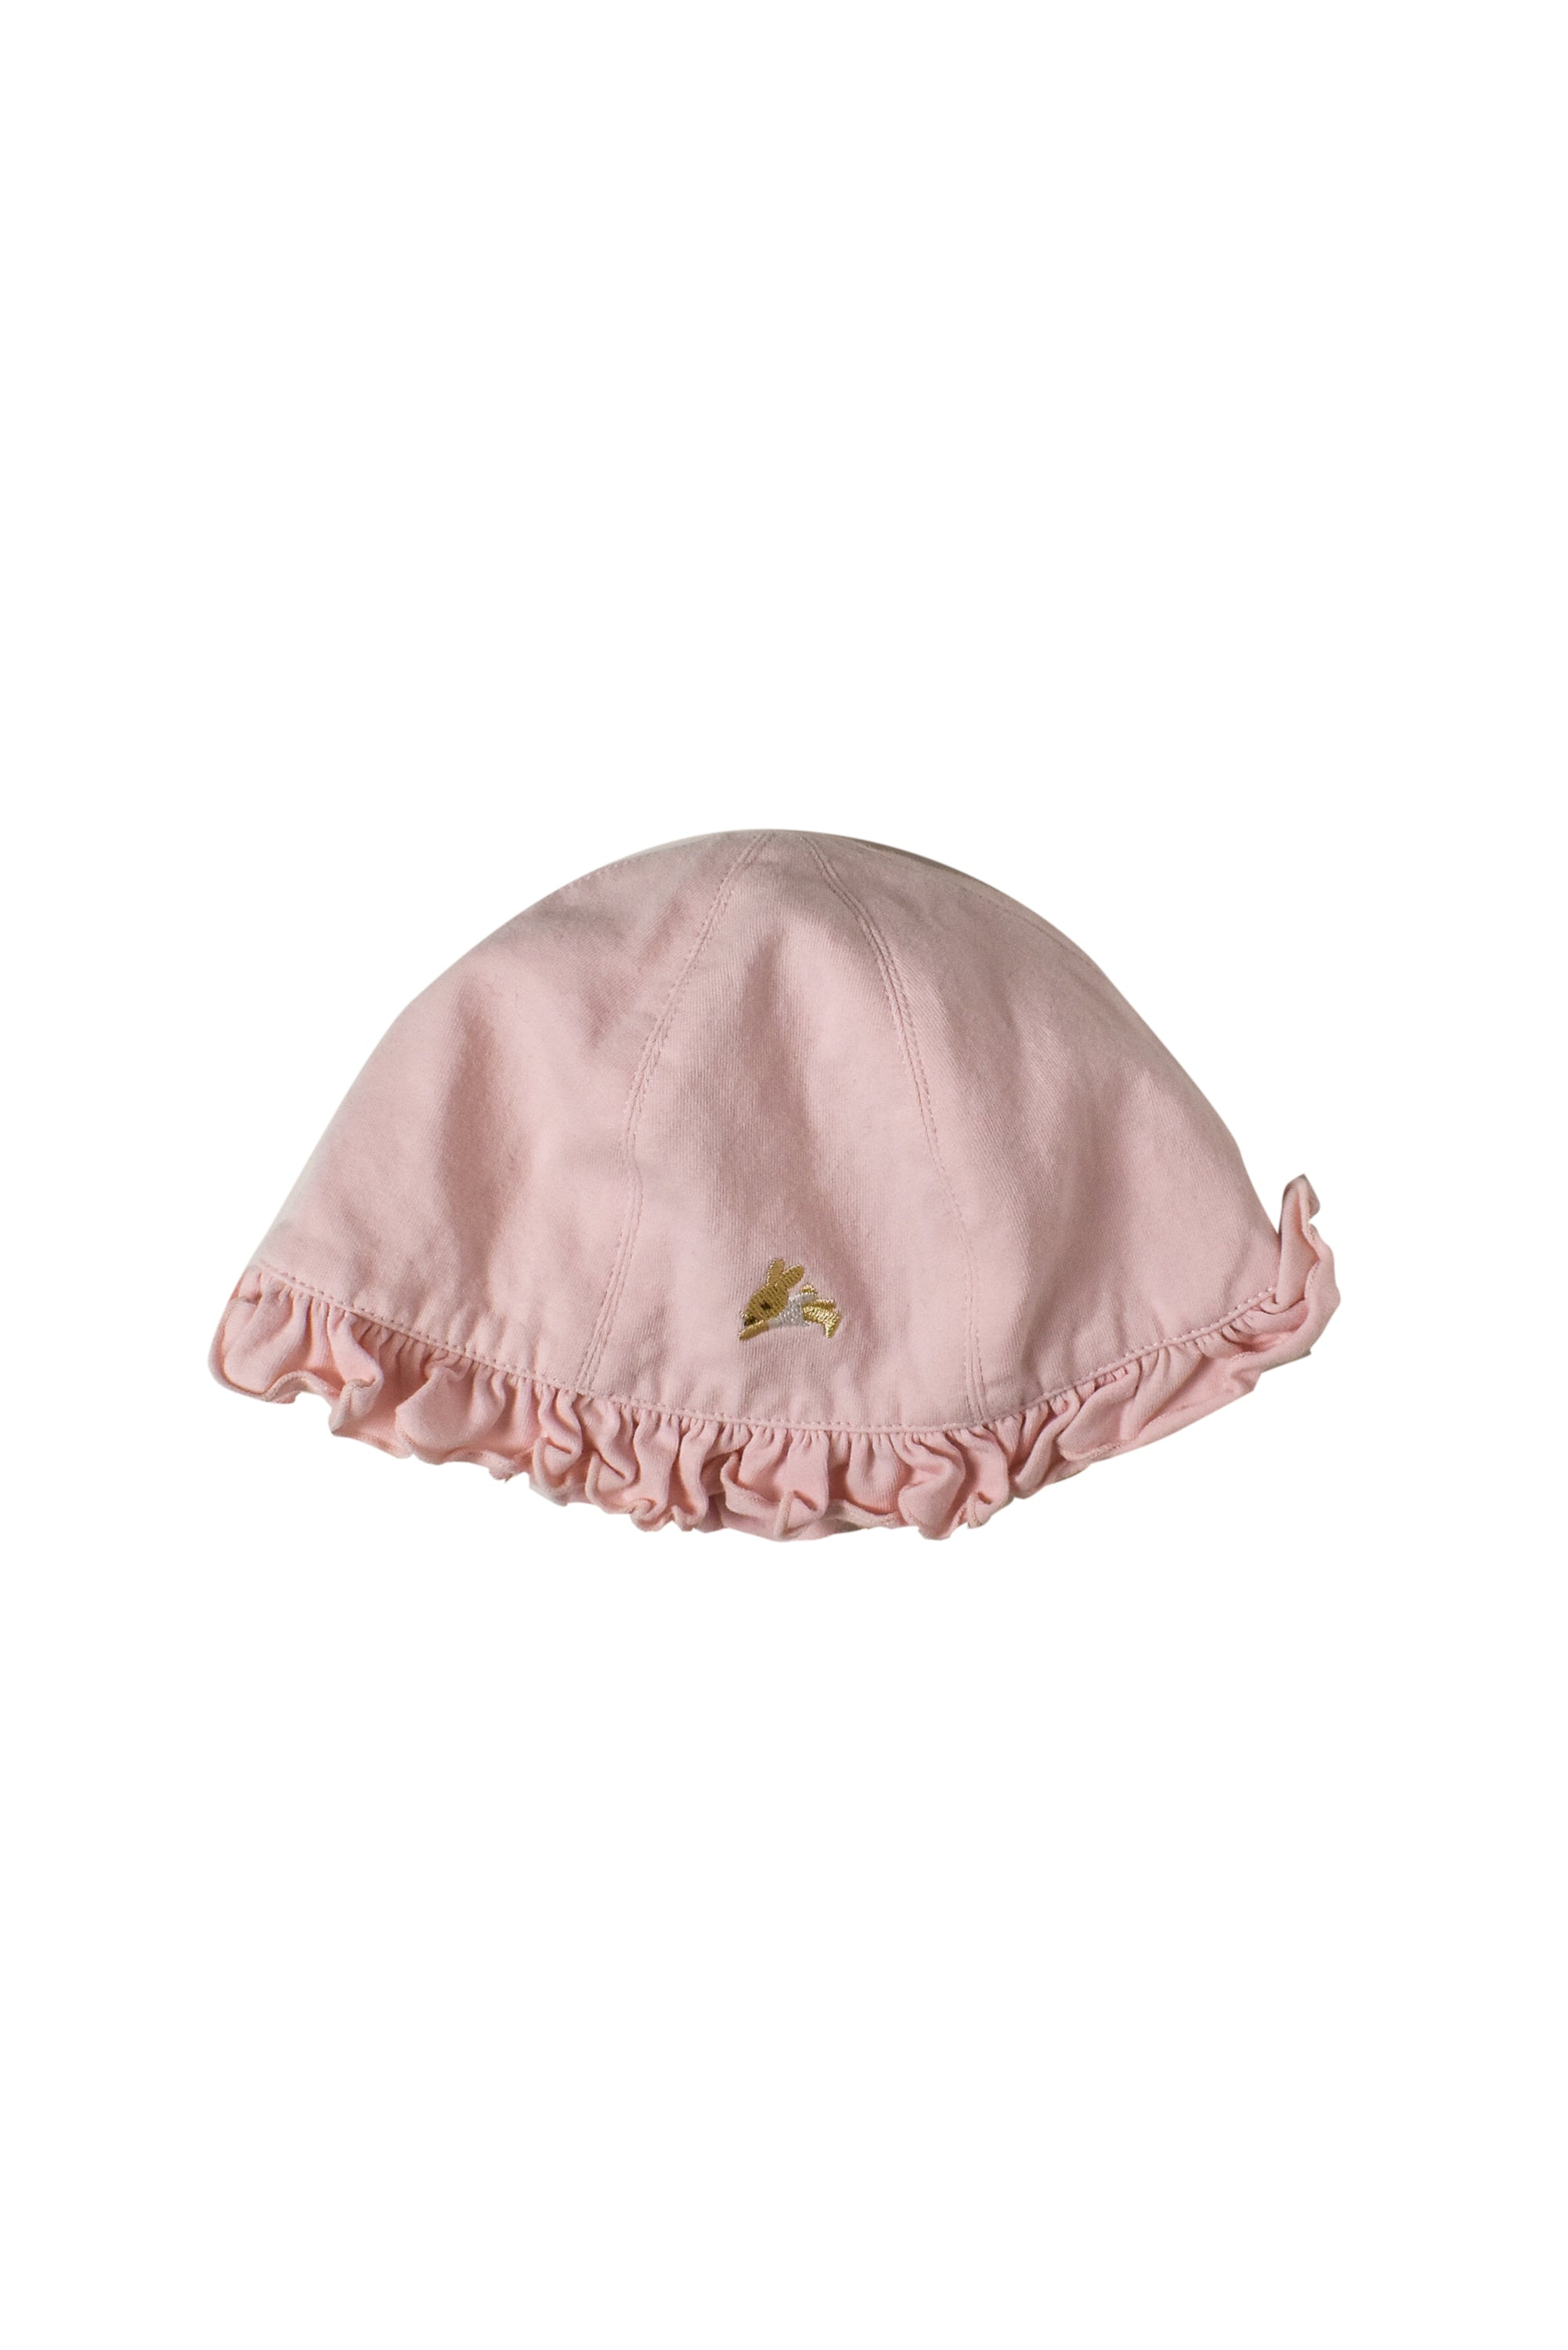 10006943 Nicholas & Bears Baby~ Hat 3-6M at Retykle